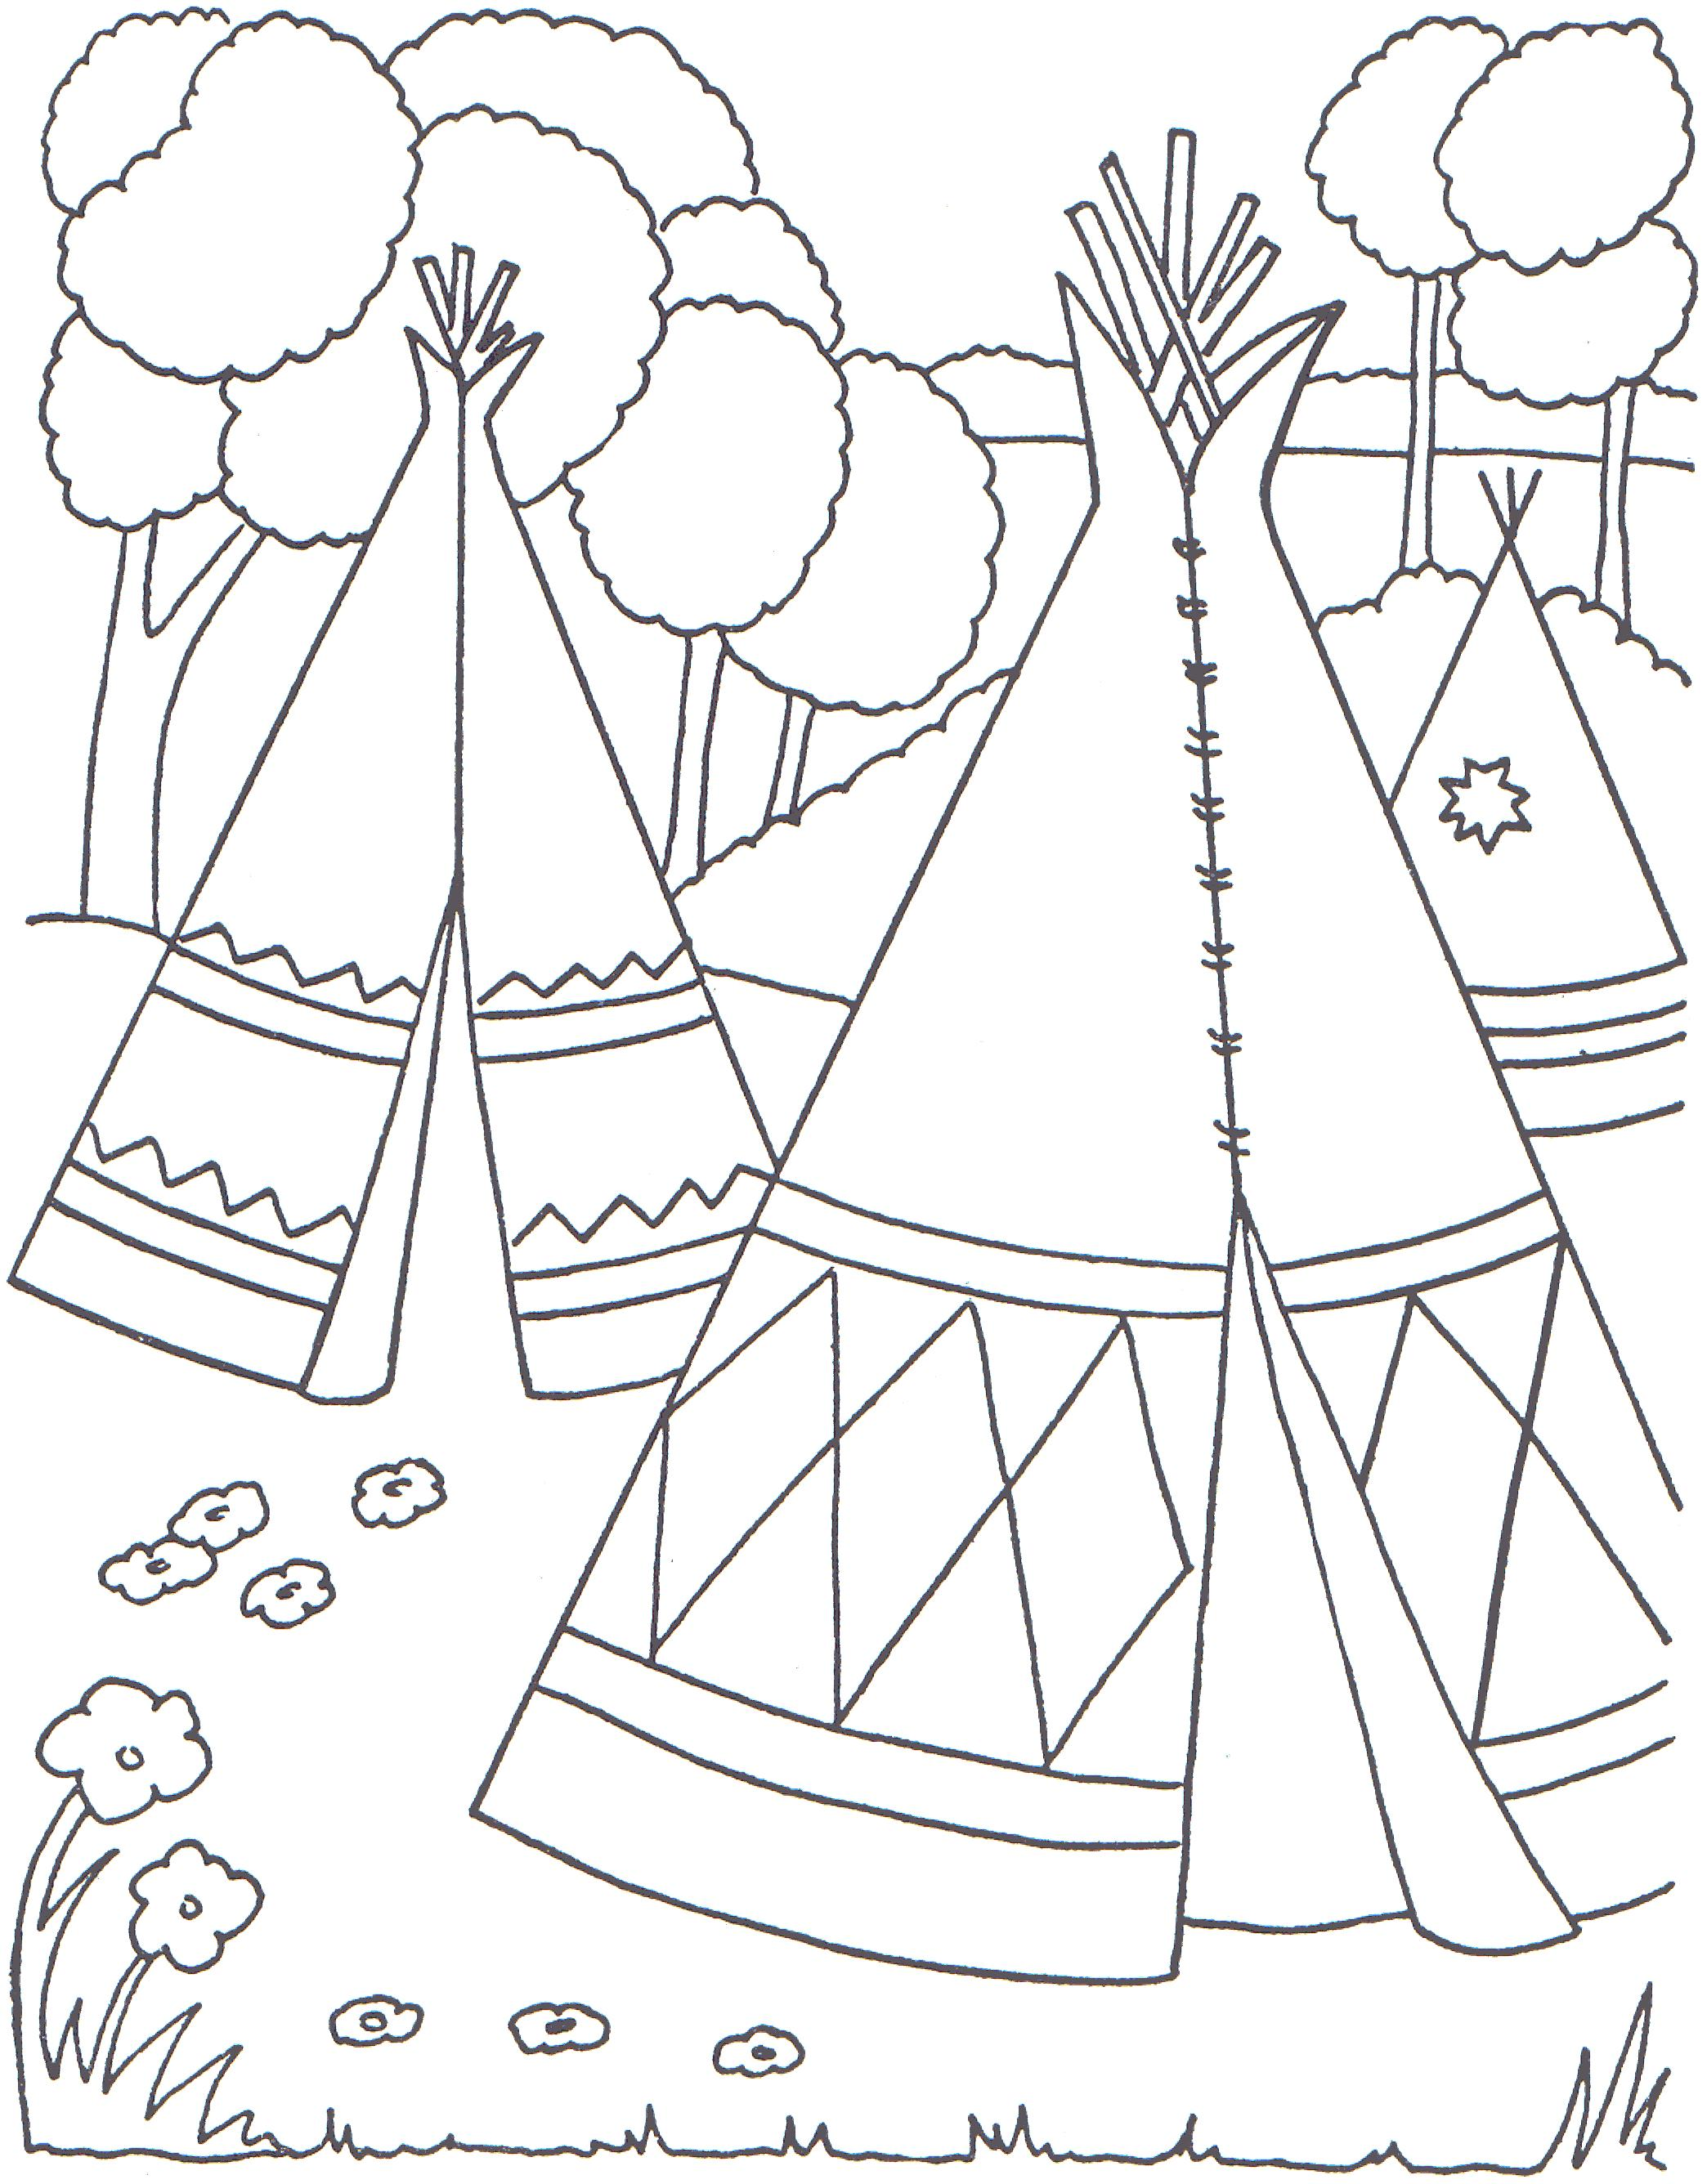 Indian Coloring Pages Coloringpages1001 Com Indian Coloring Pages